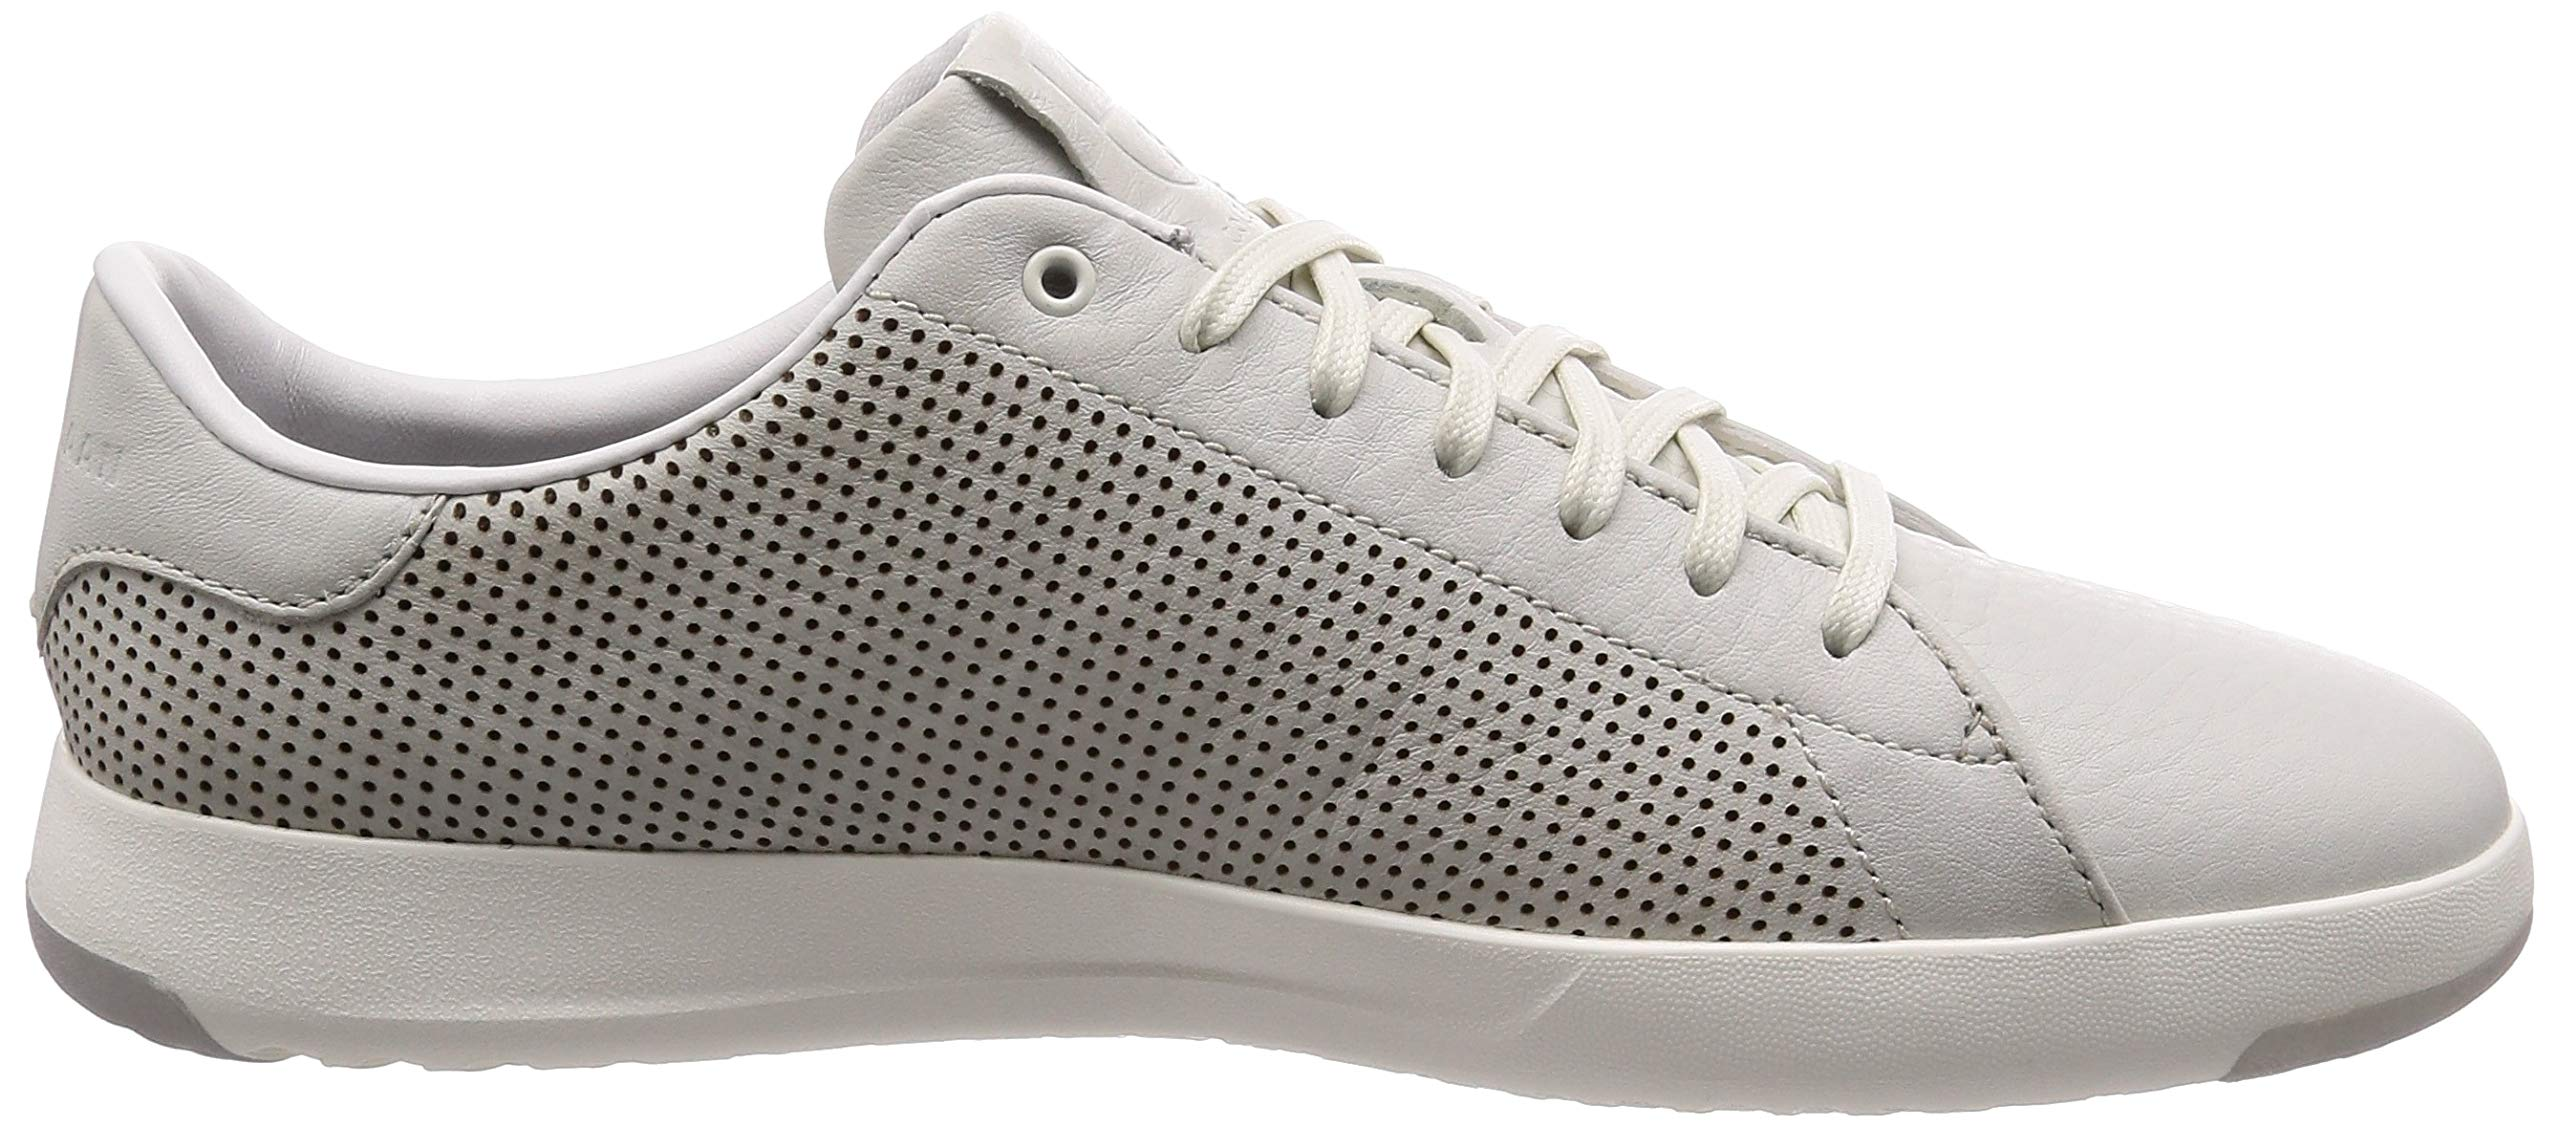 Cole Haan Mens Grandpro Tennis Sneaker 7 Chalk Tumbled Leather by Cole Haan (Image #6)